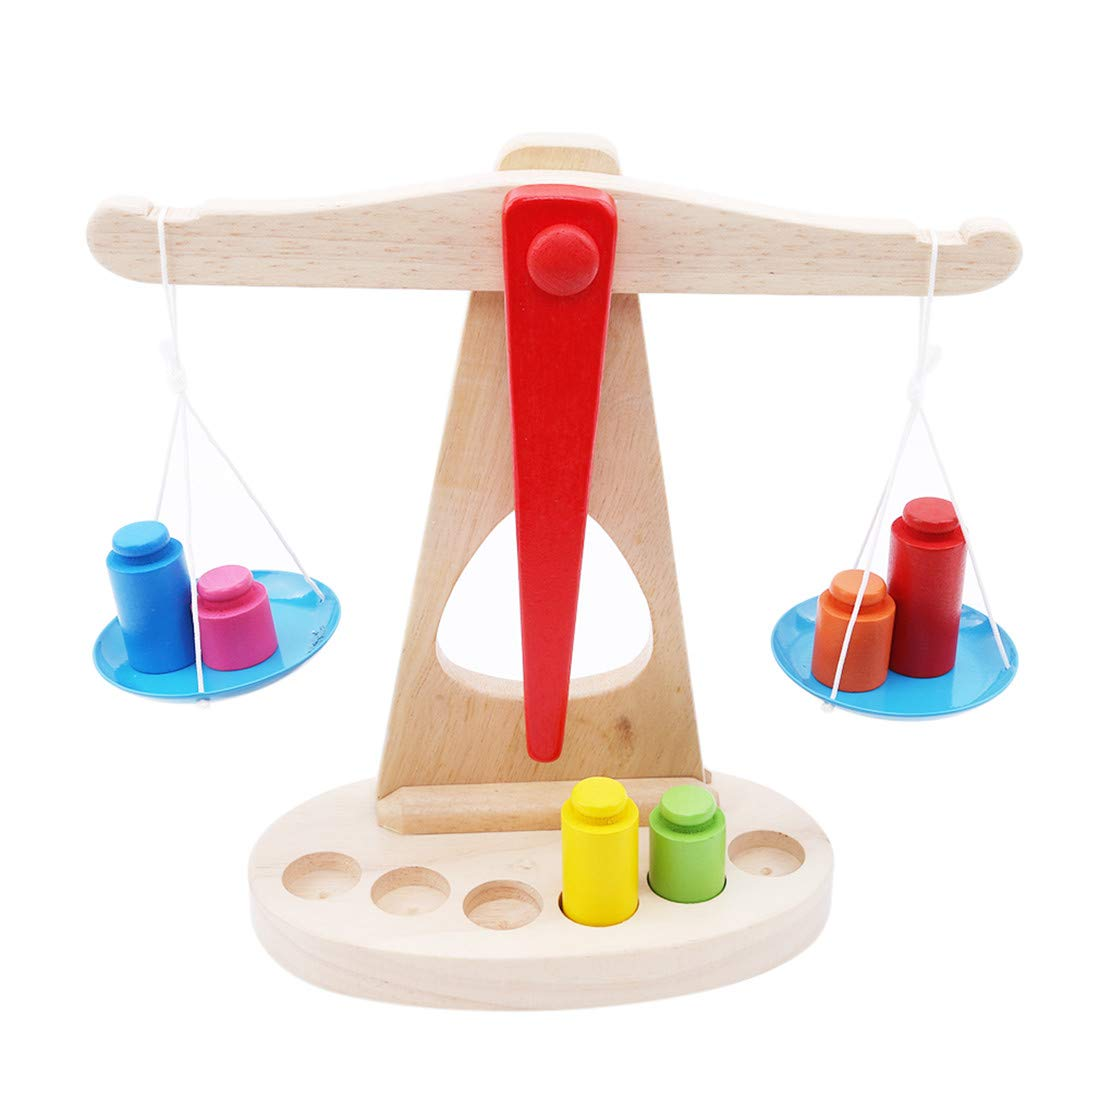 VWH Educational Baby Early Evelopment Scale Funny Balance Game Wooden Toy for Construction Engineering Creative Fun kit